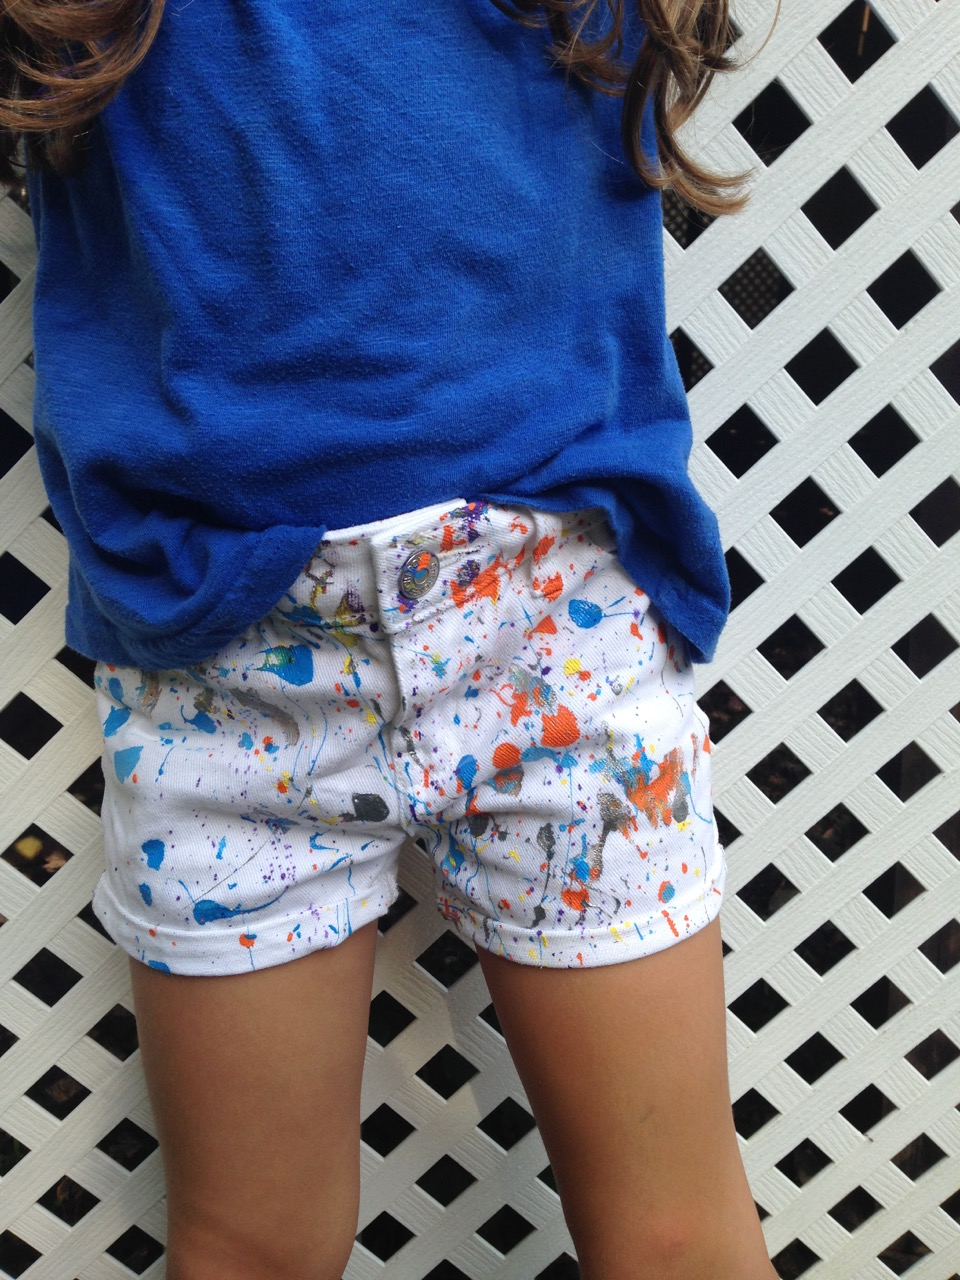 DIY Splatter Paint Clothing for #BTS Cool | AFancyGirlMust.com